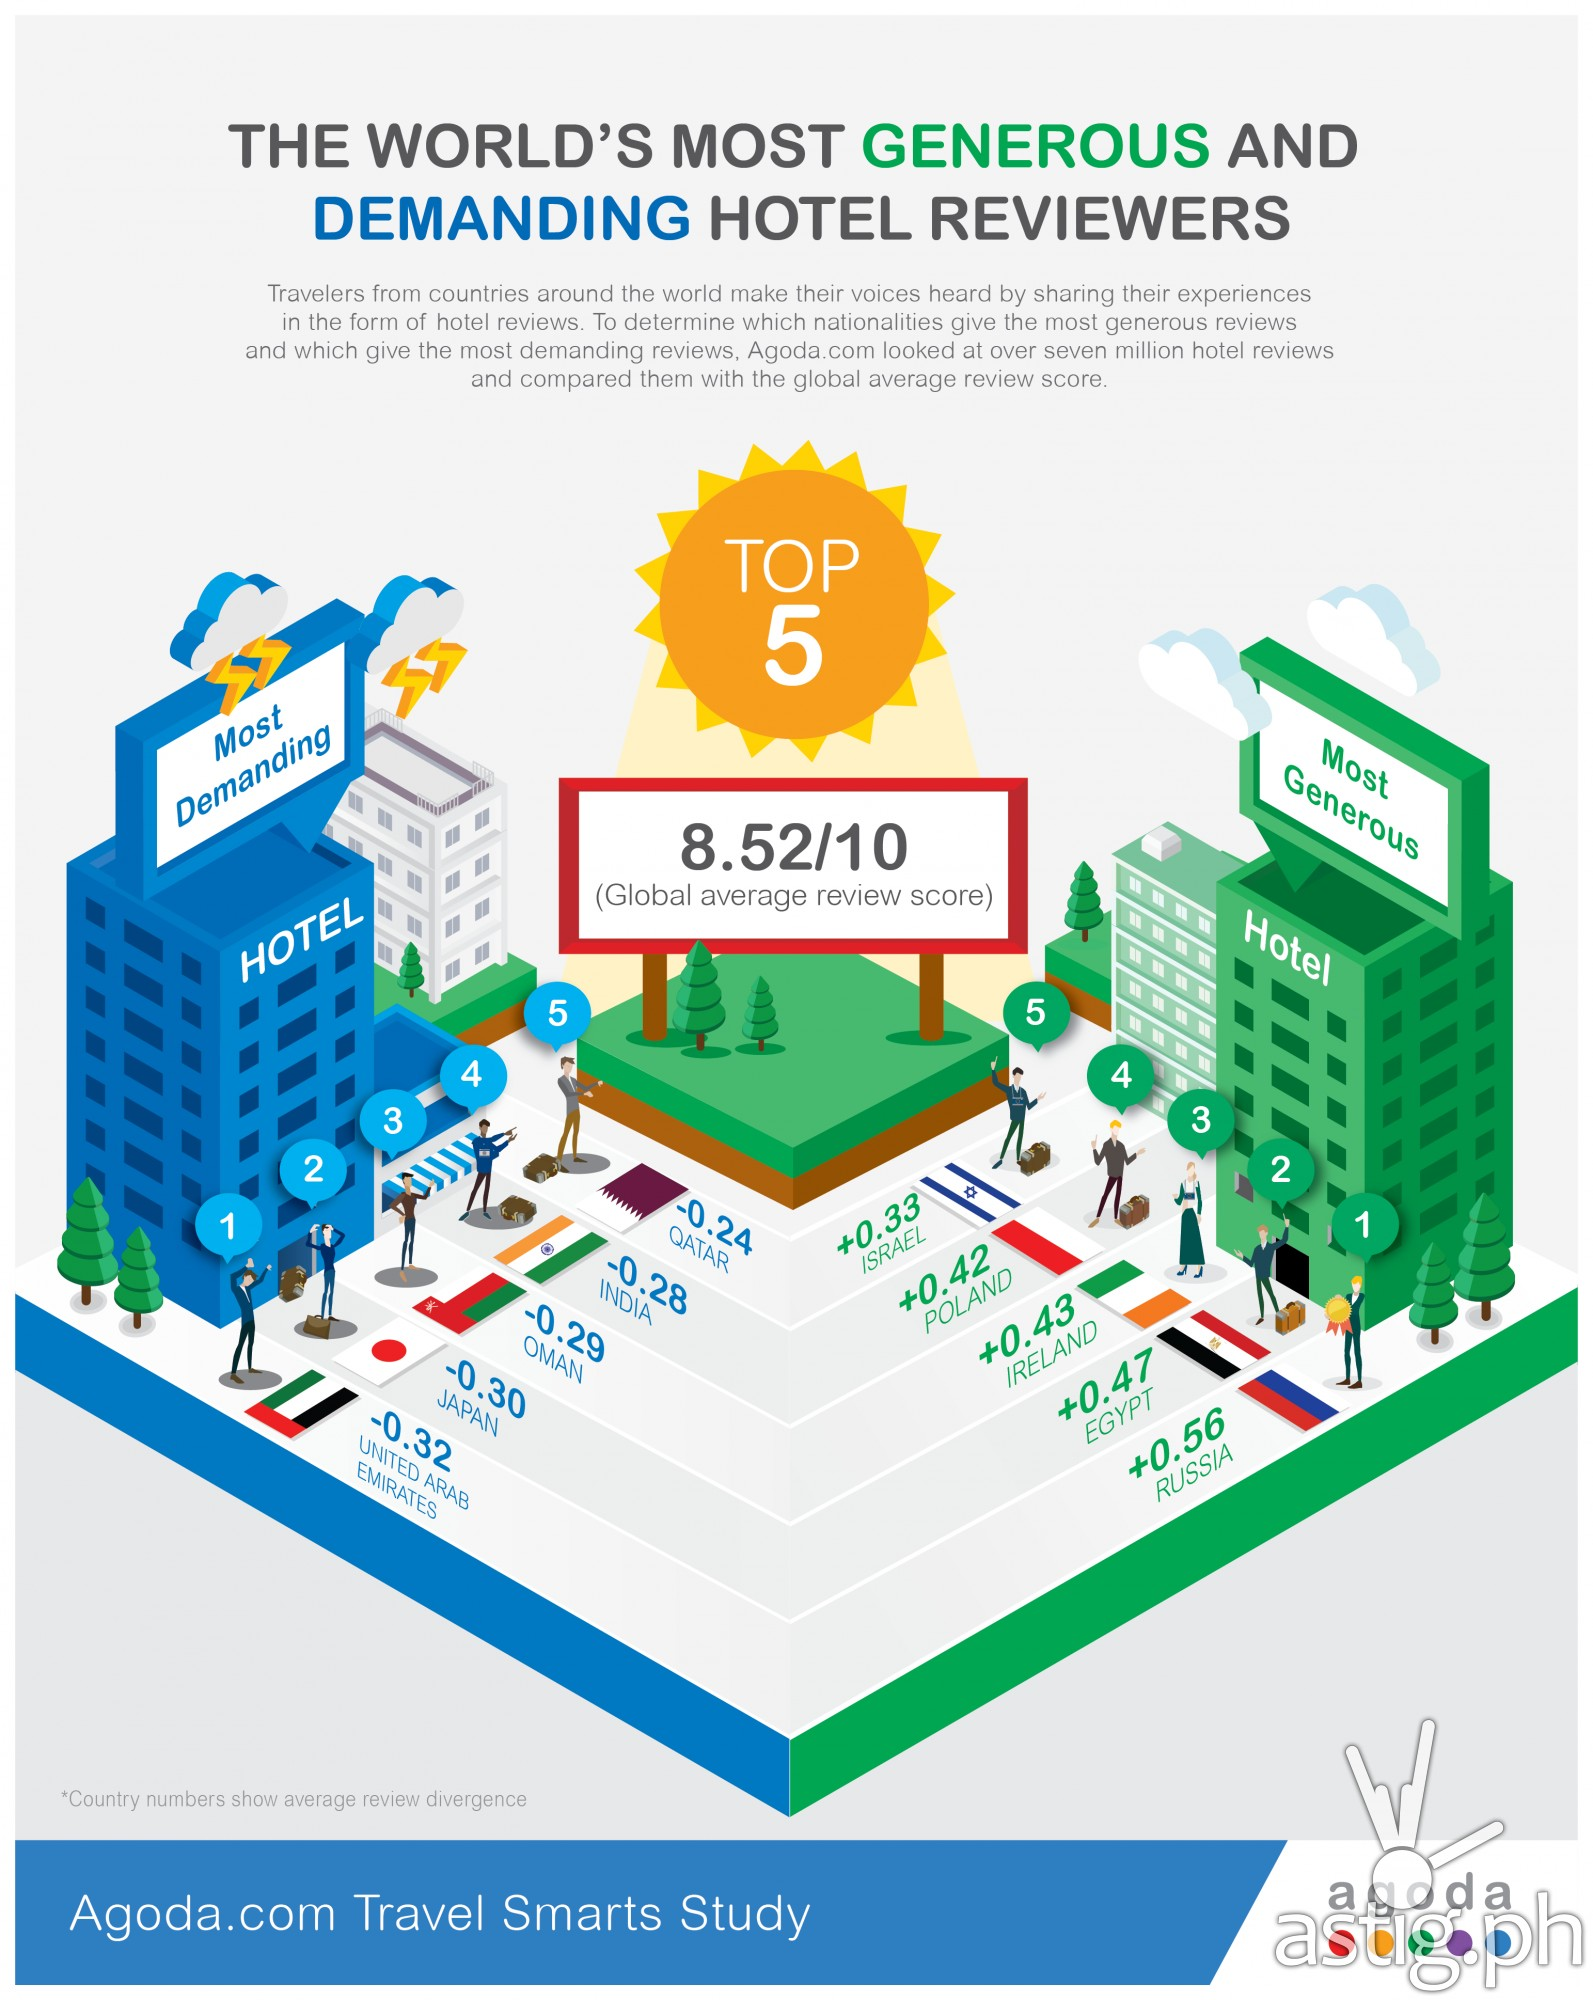 Most Generous and Demanding Hotel Reviewers (infographic)